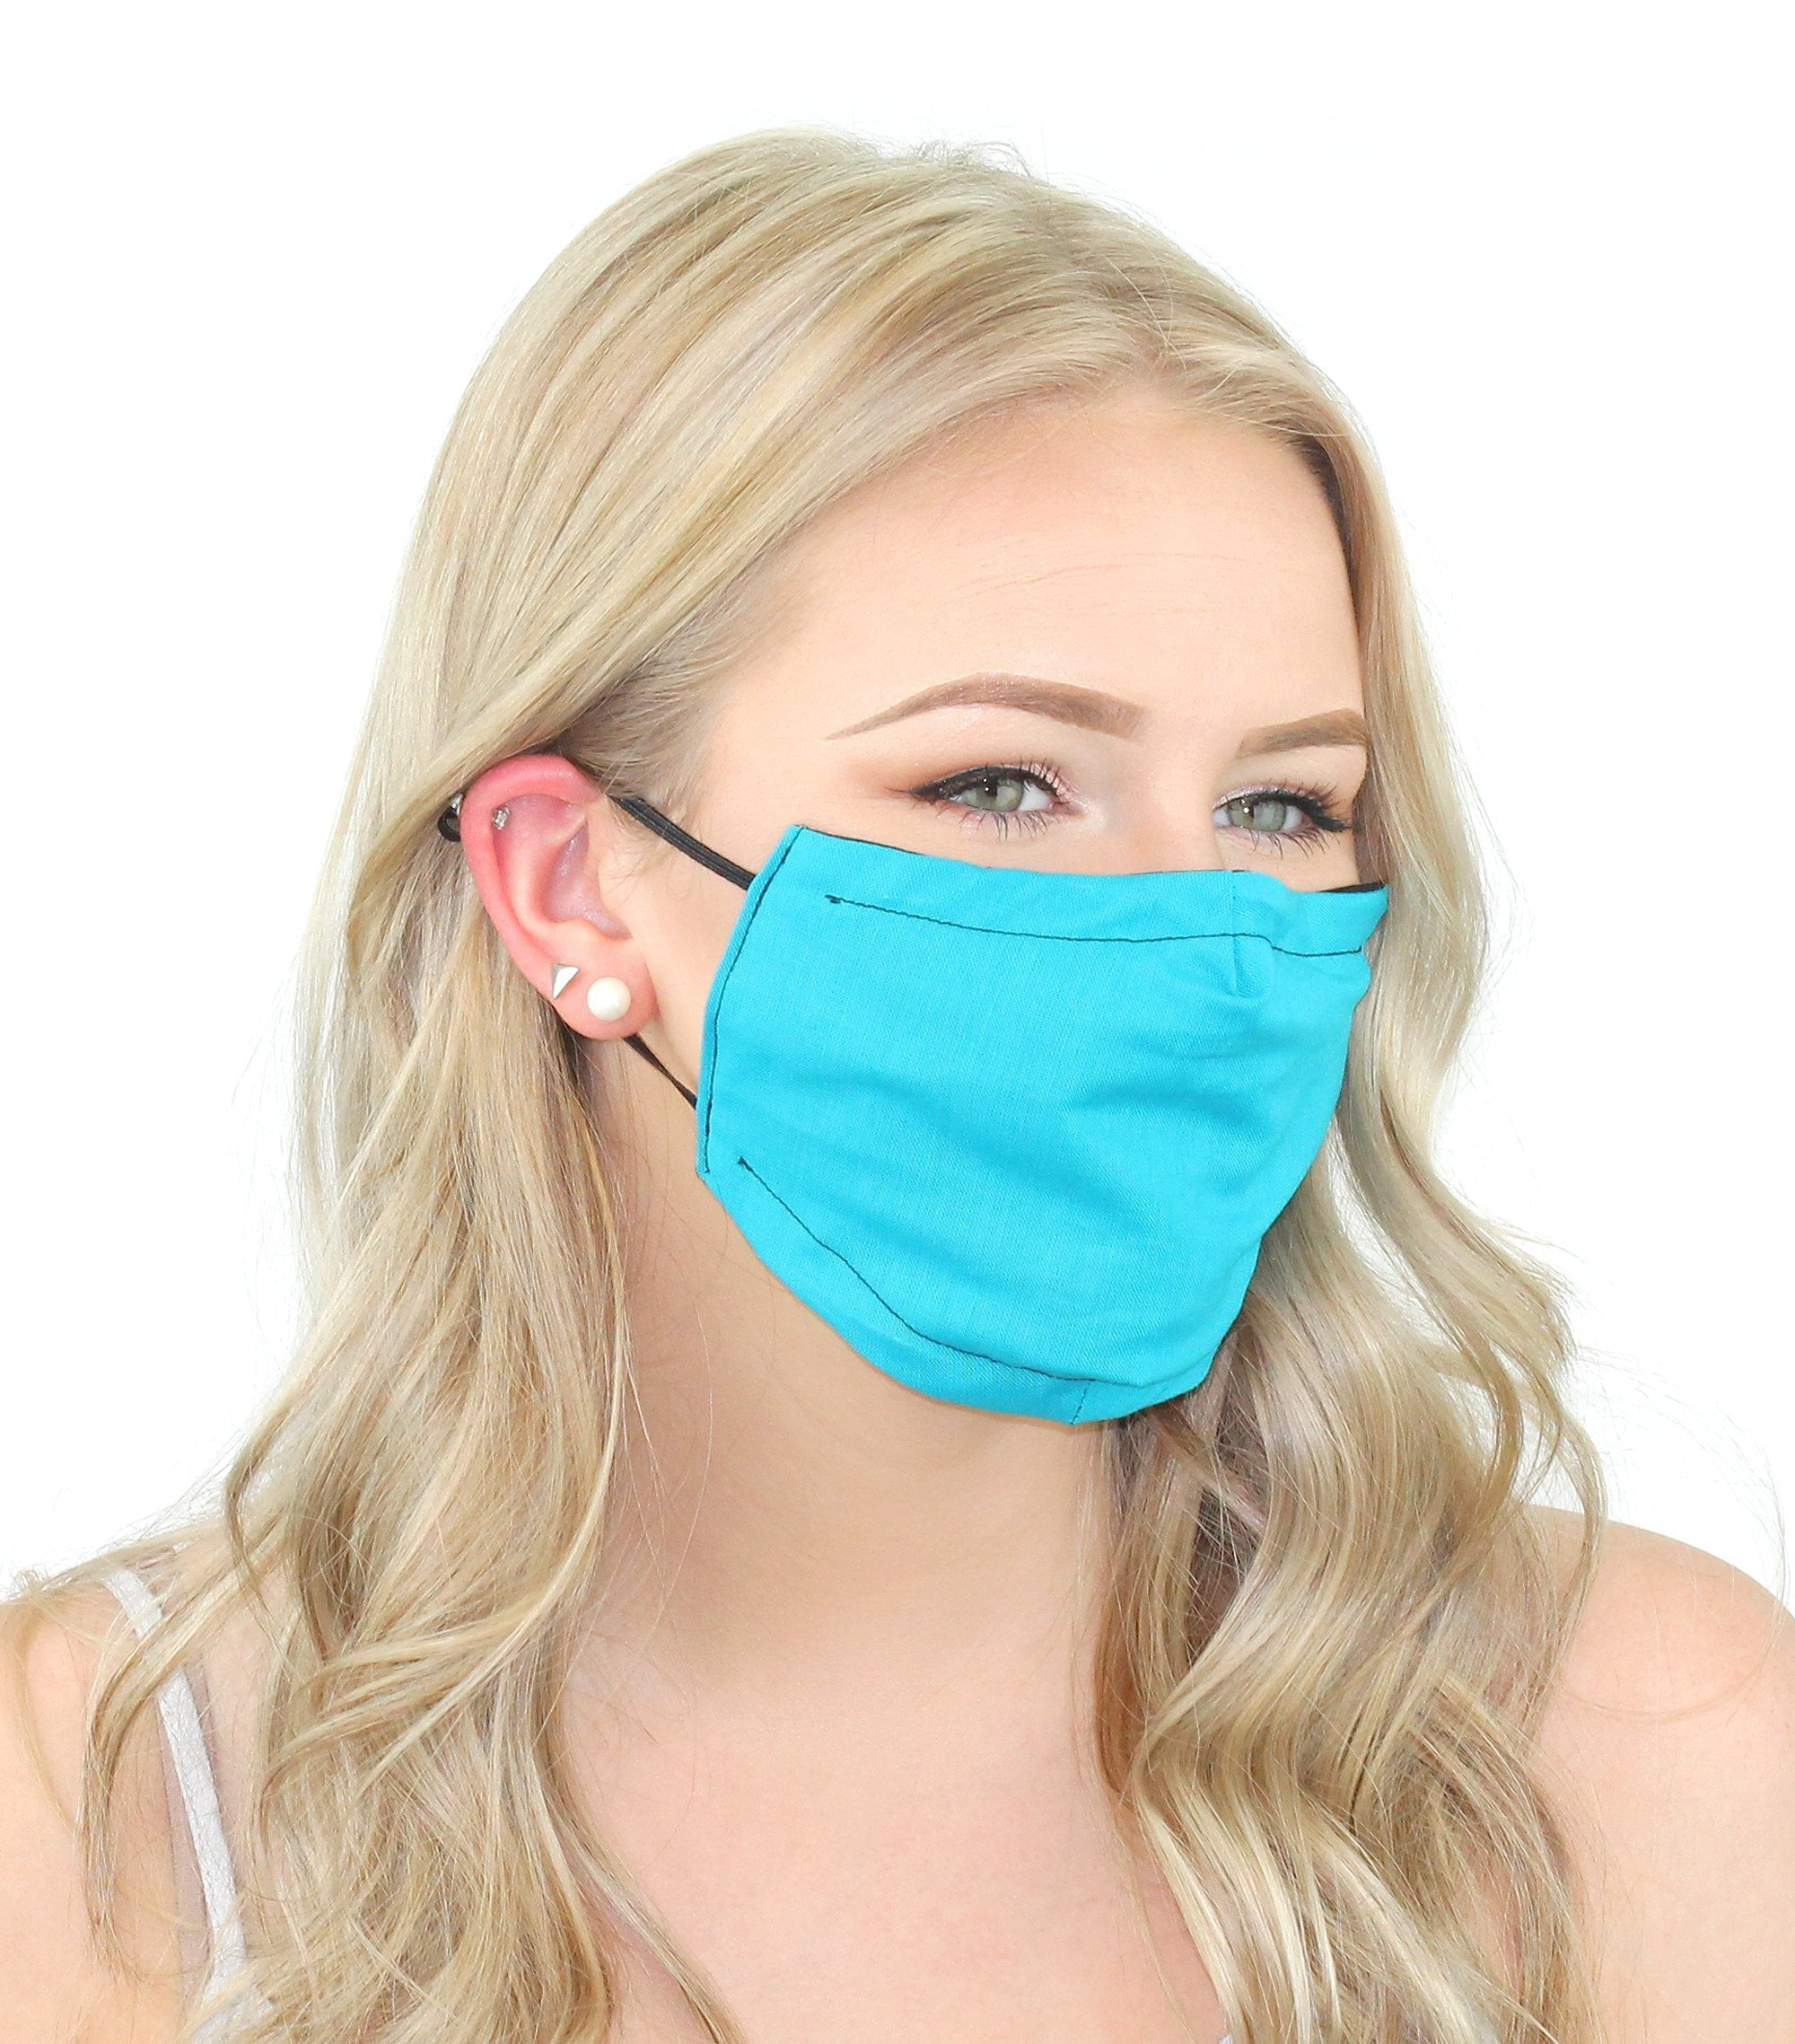 Reusable Cloth Face Mask With Pm2.5 Filter And Nose Bridge Turquoise Beauty & Health